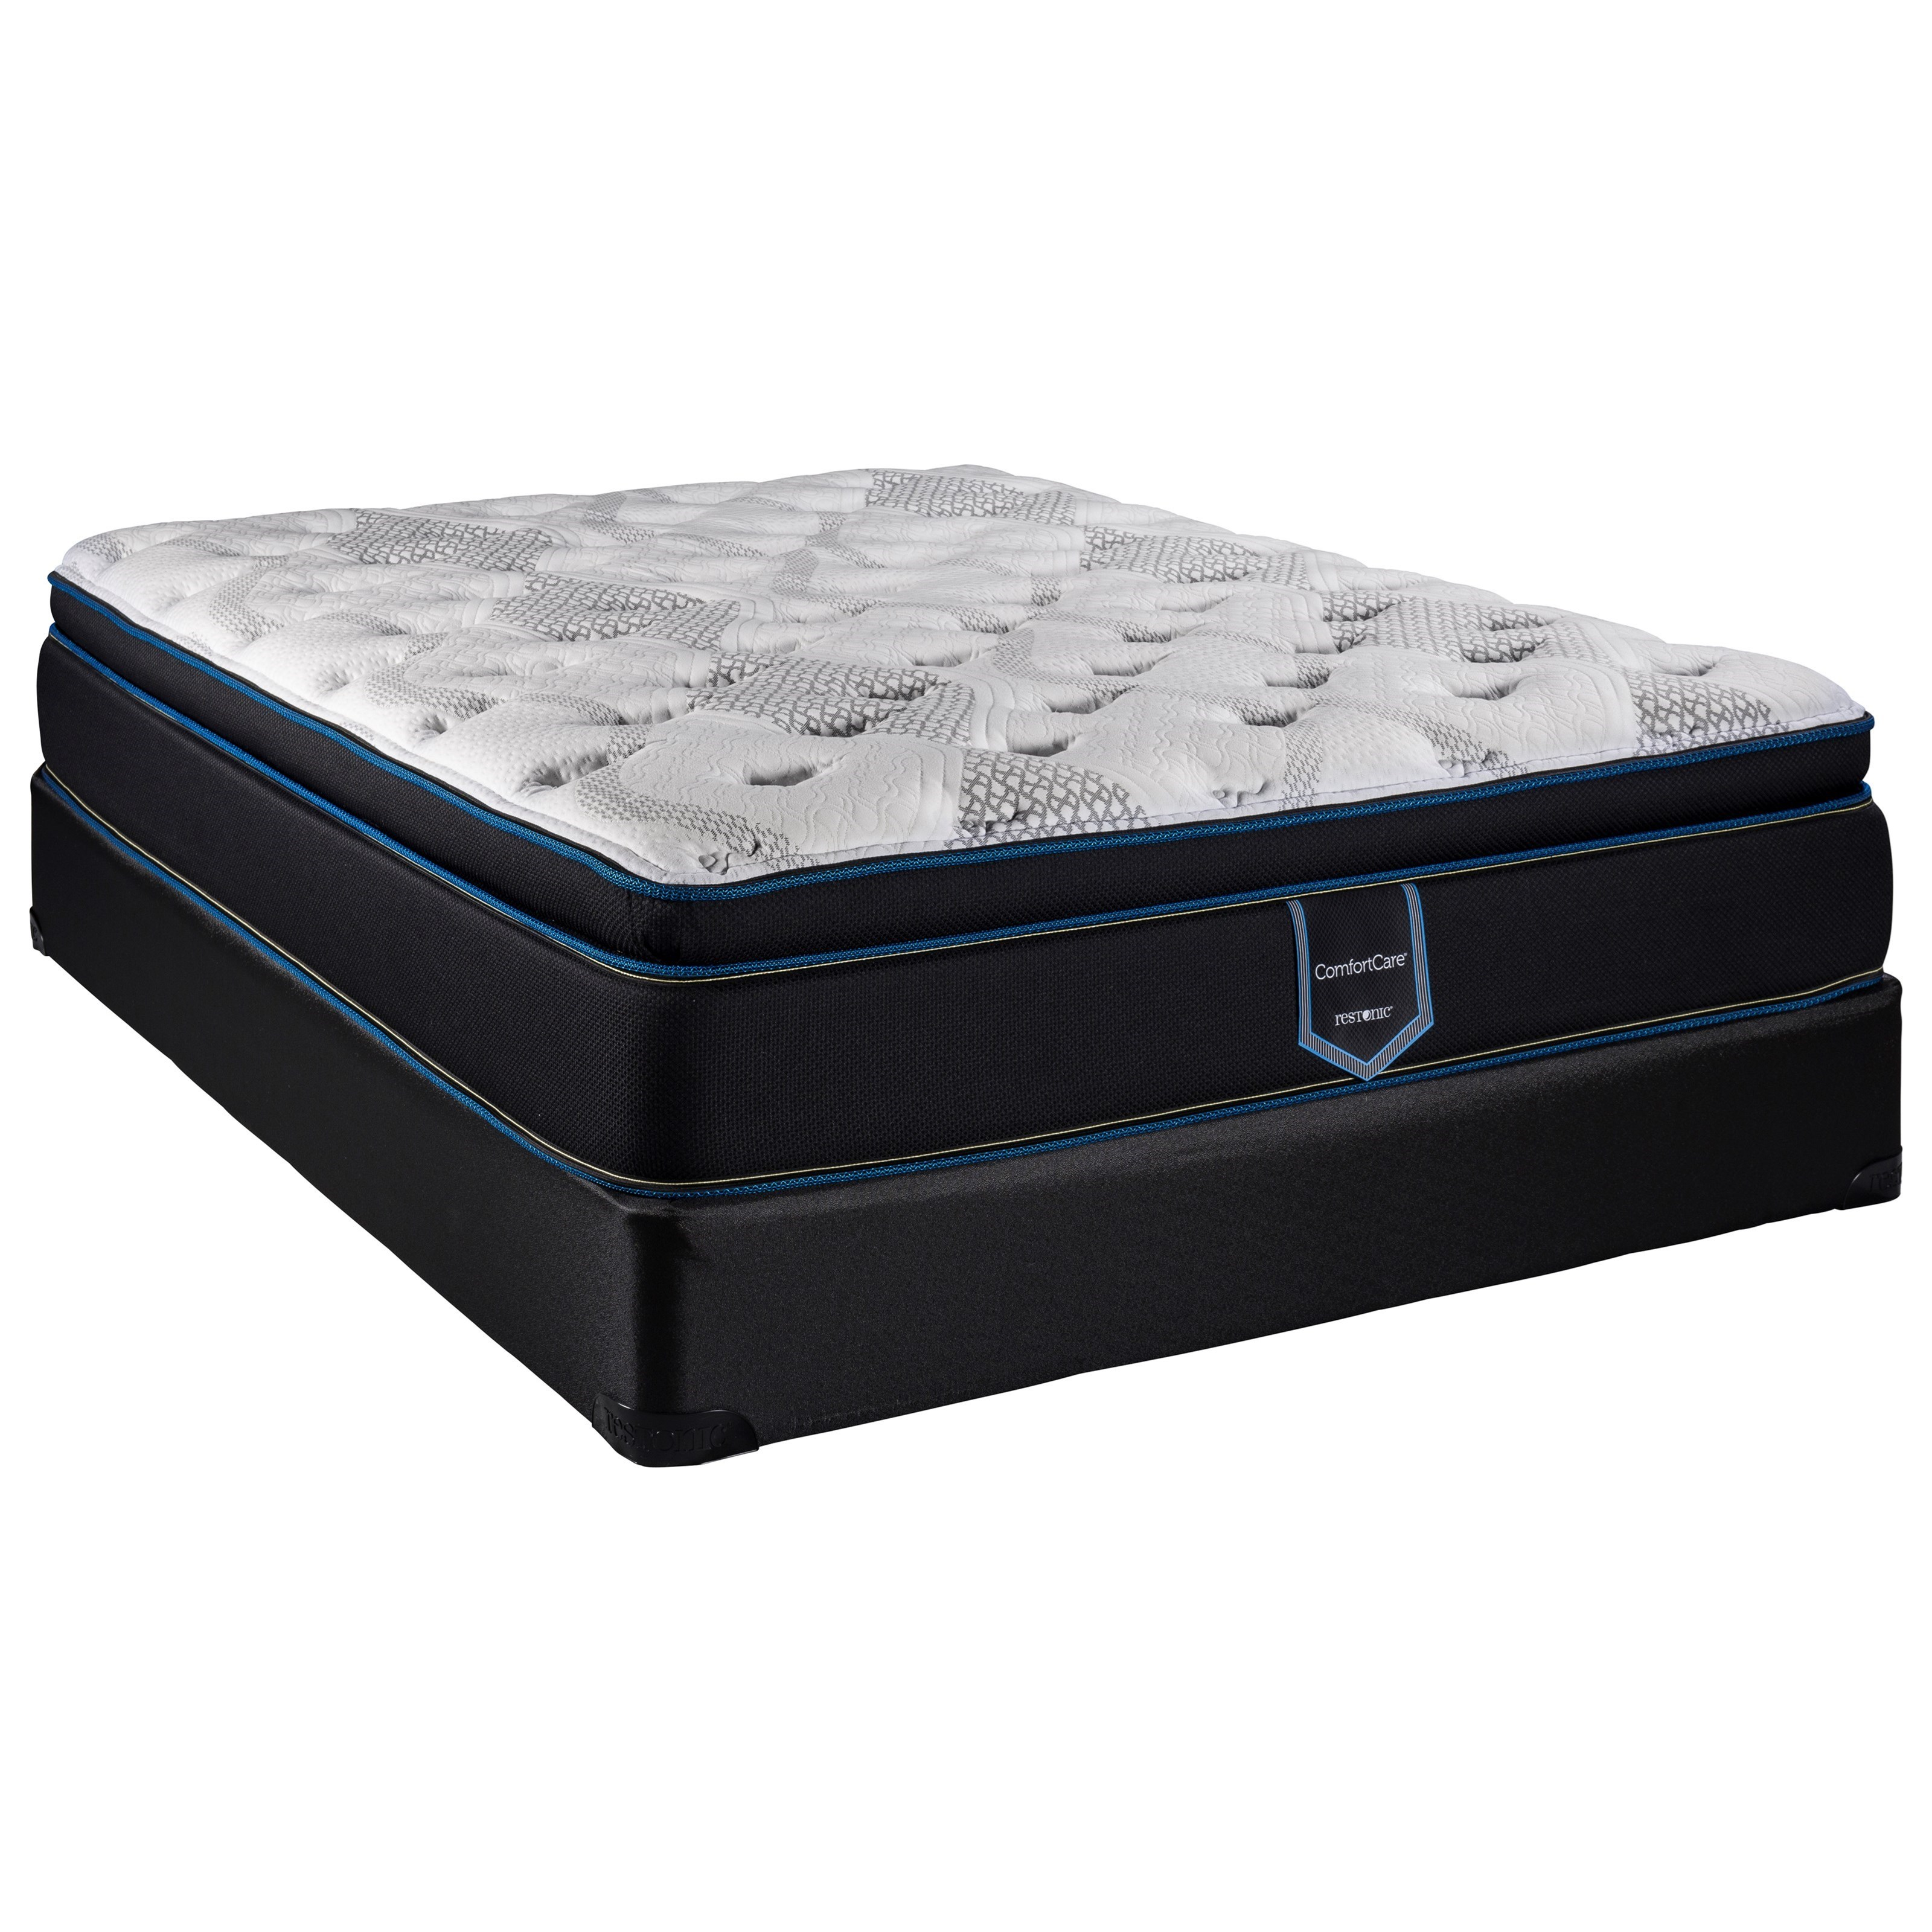 """Blossom Pillow Top ComfortCare King 14"""" Pillow Top Mattress Set by Restonic at H.L. Stephens"""